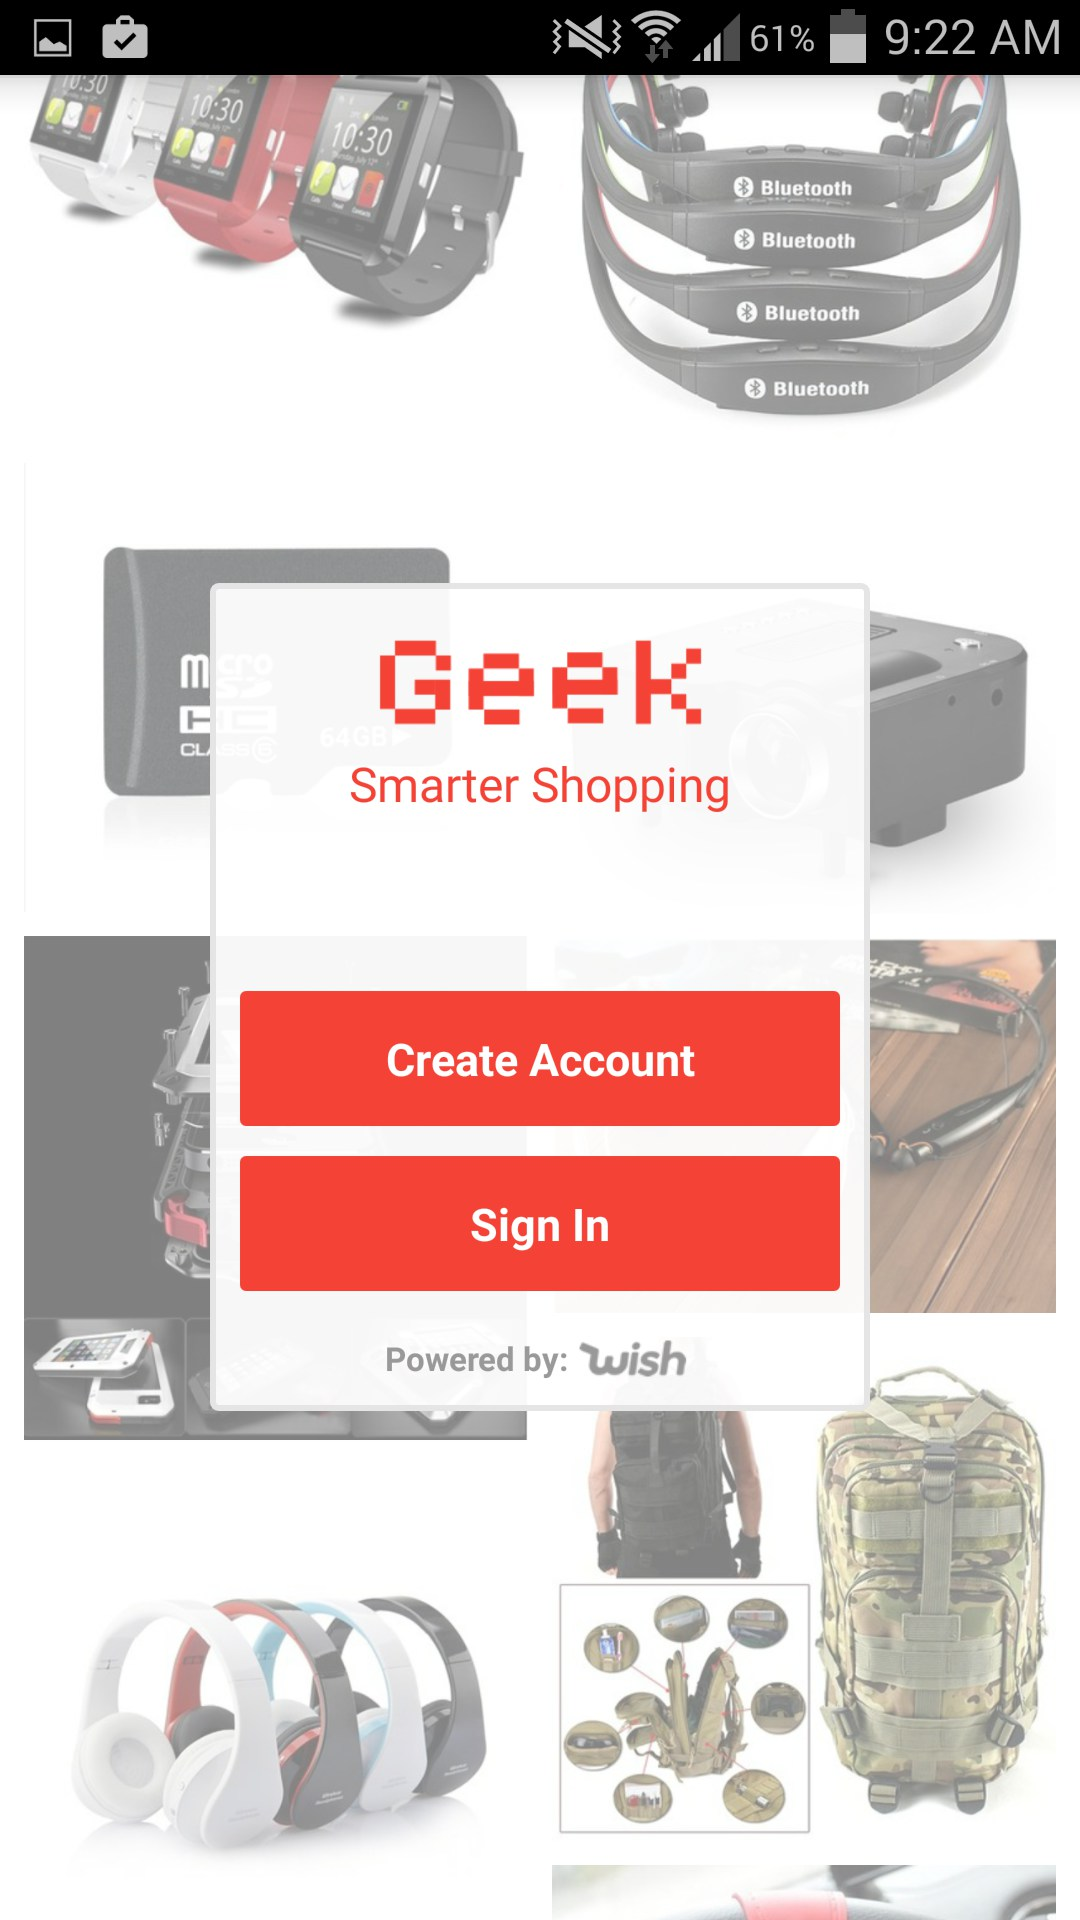 Geek Smarter Shopping Soft For Android Free Download Geek Smarter Shopping Great